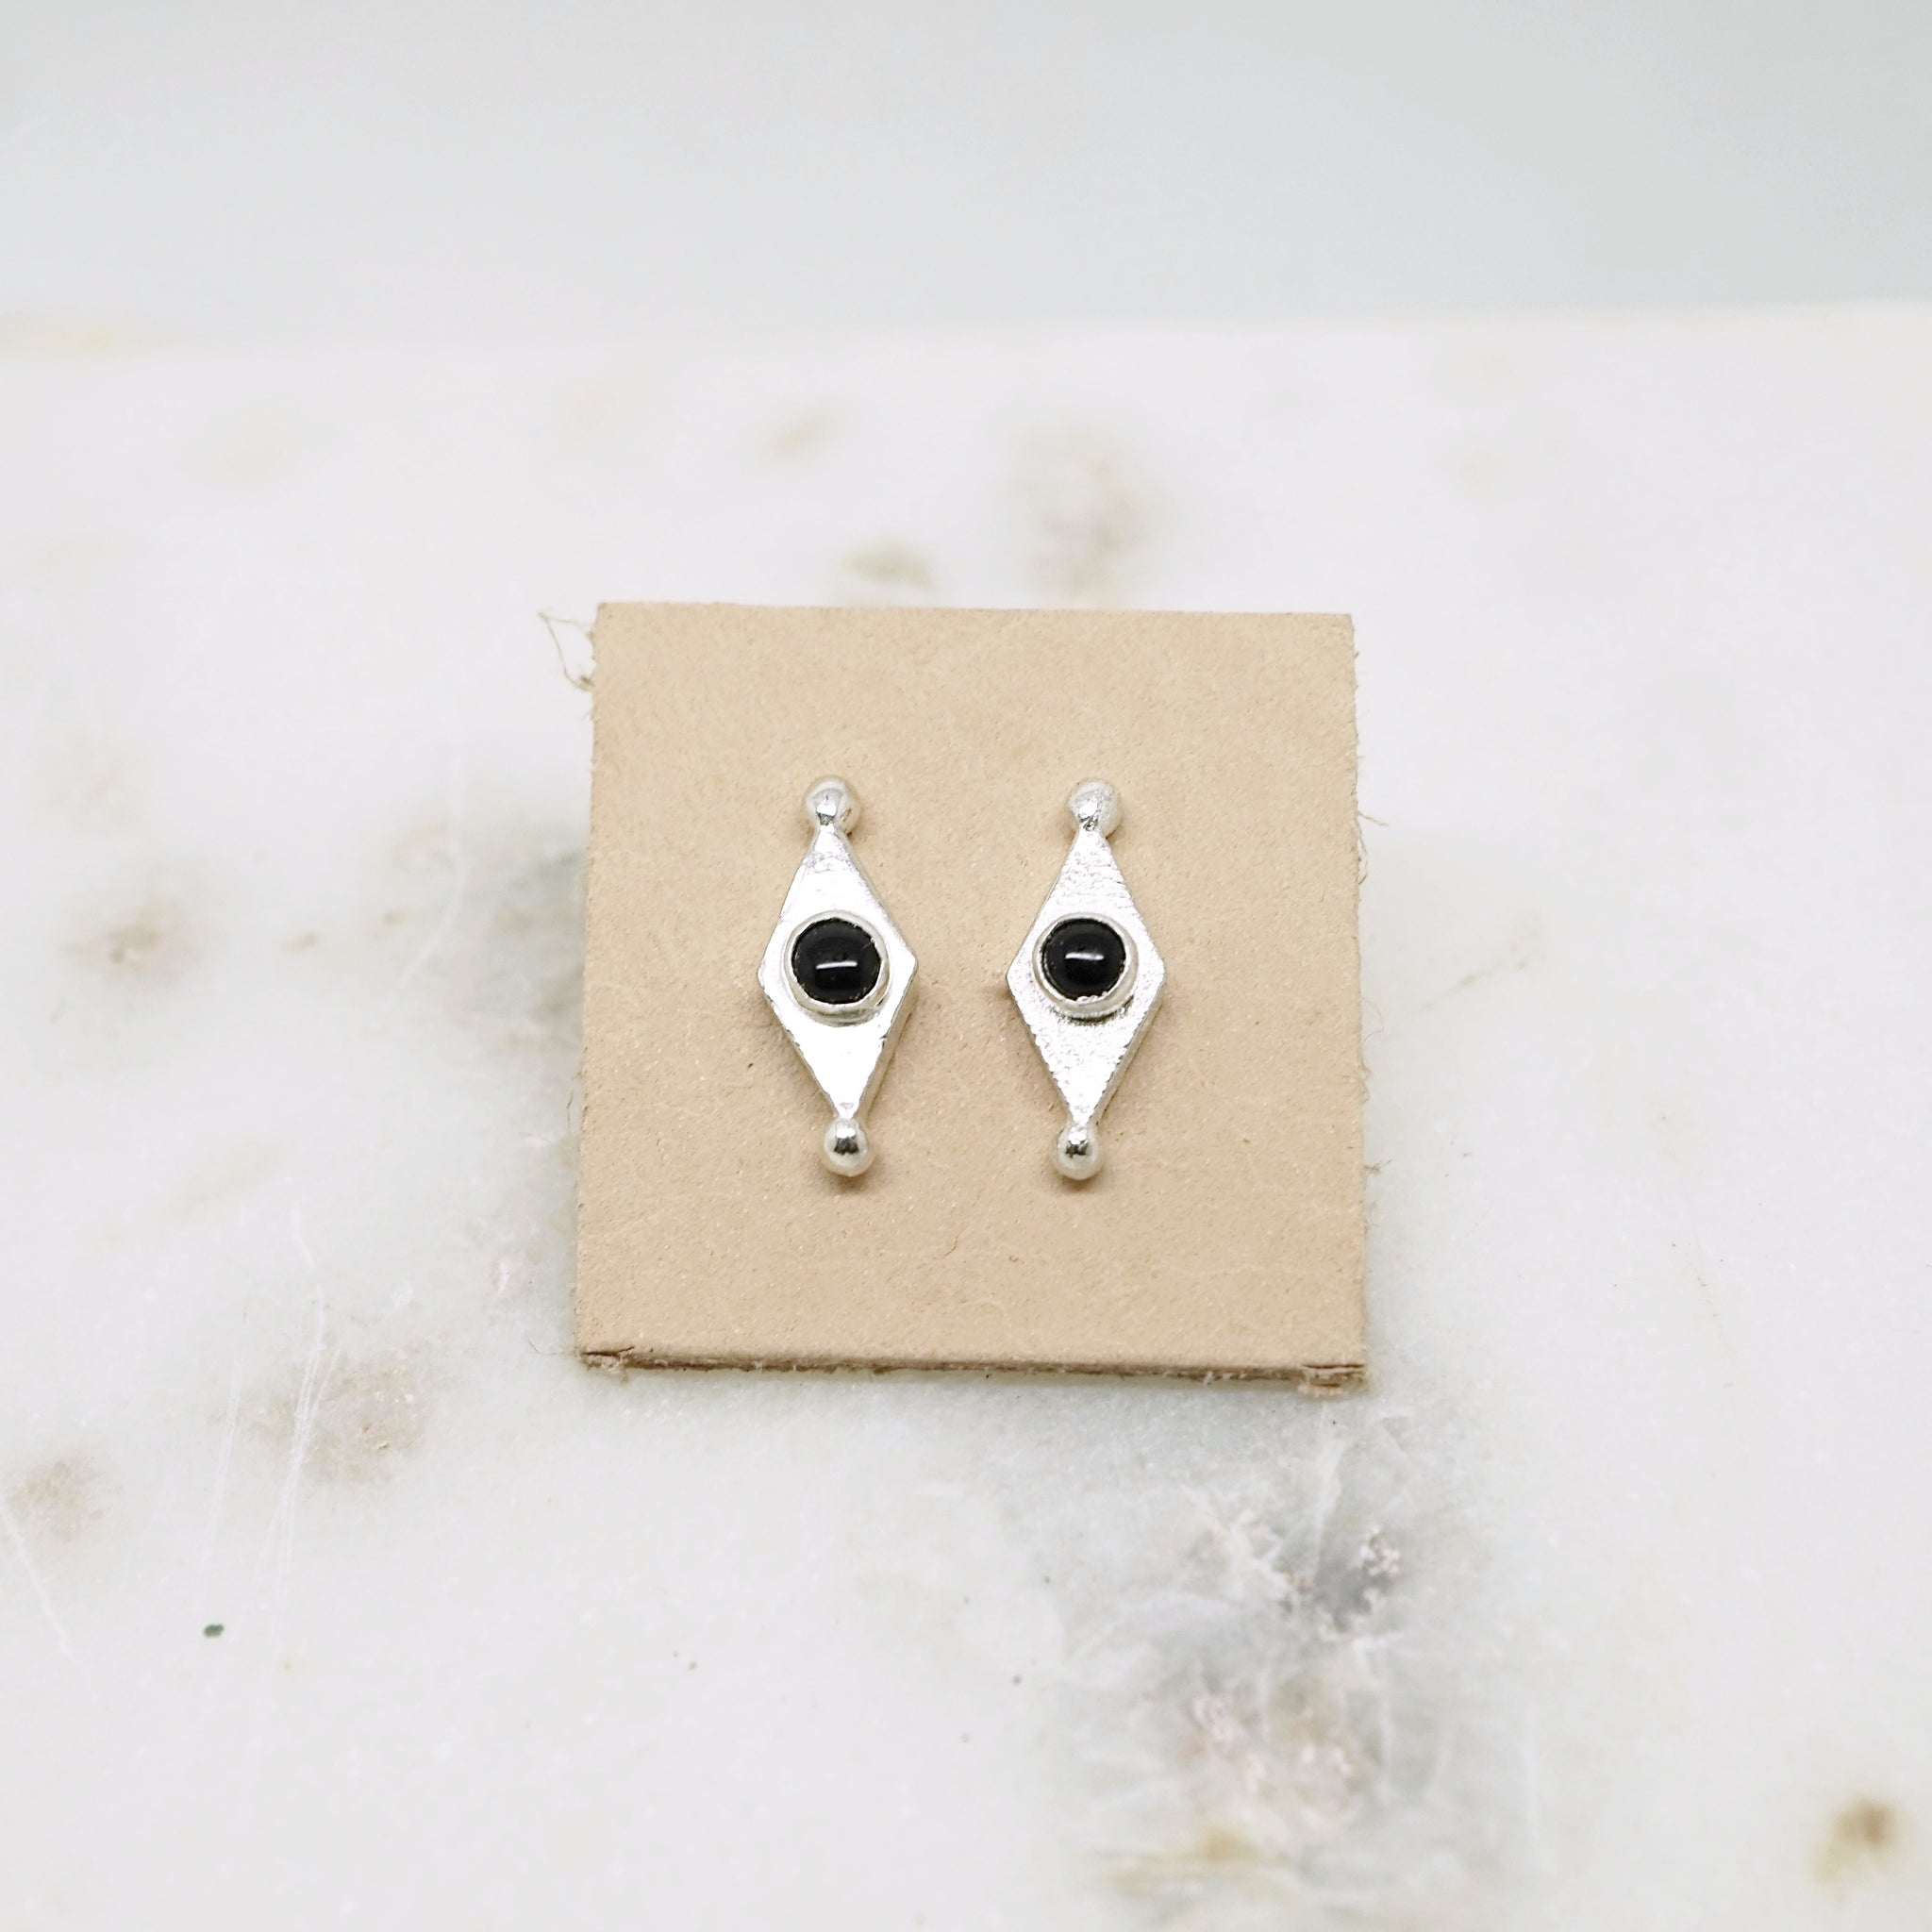 Diamond shape studs with Onyx